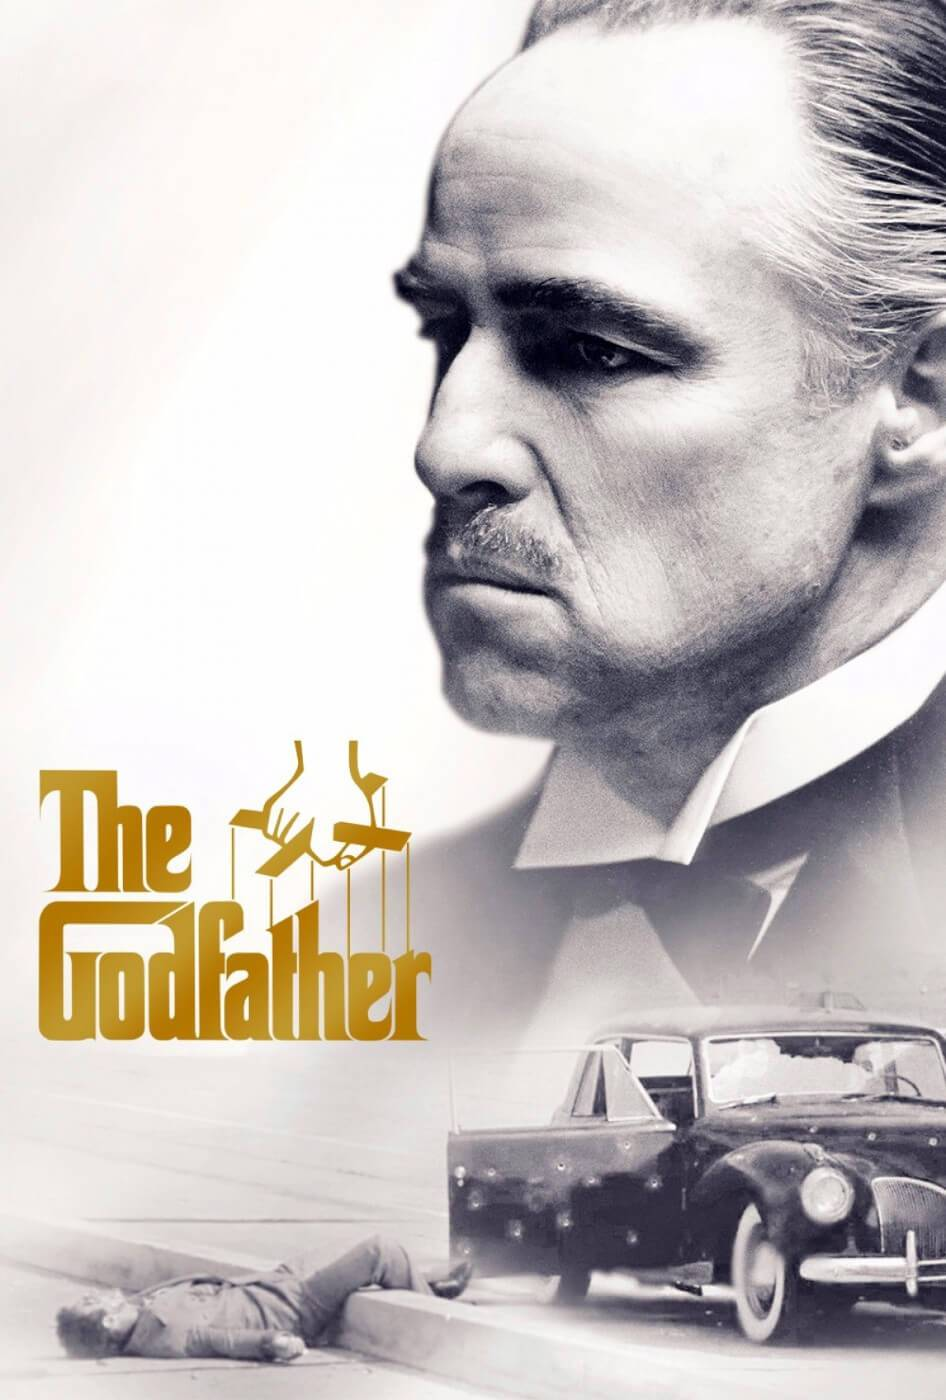 Movie Poster Art - The Godfather - Tallenge Hollywood Poster Collection -  Canvas Prints by Bethany Morrison | Buy Posters, Frames, Canvas & Digital  Art Prints | Small, Compact, Medium and Large Variants